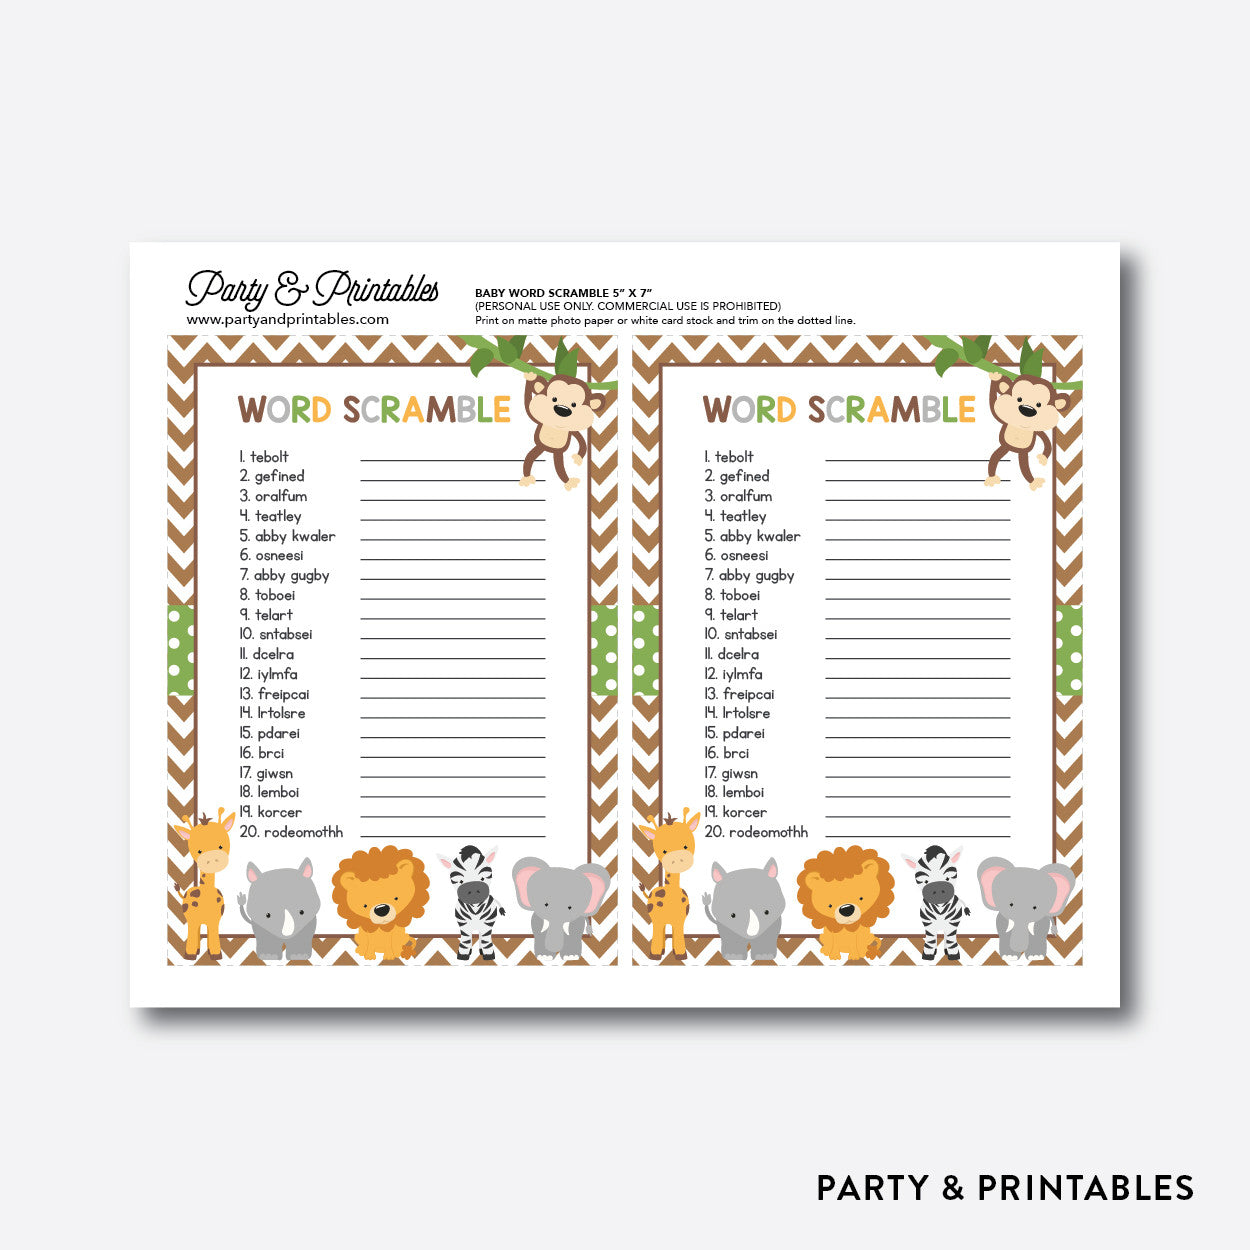 Baby Safari Baby Word Scramble / Non-Personalized / Instant Download (SBS.31), party printables - Party and Printables